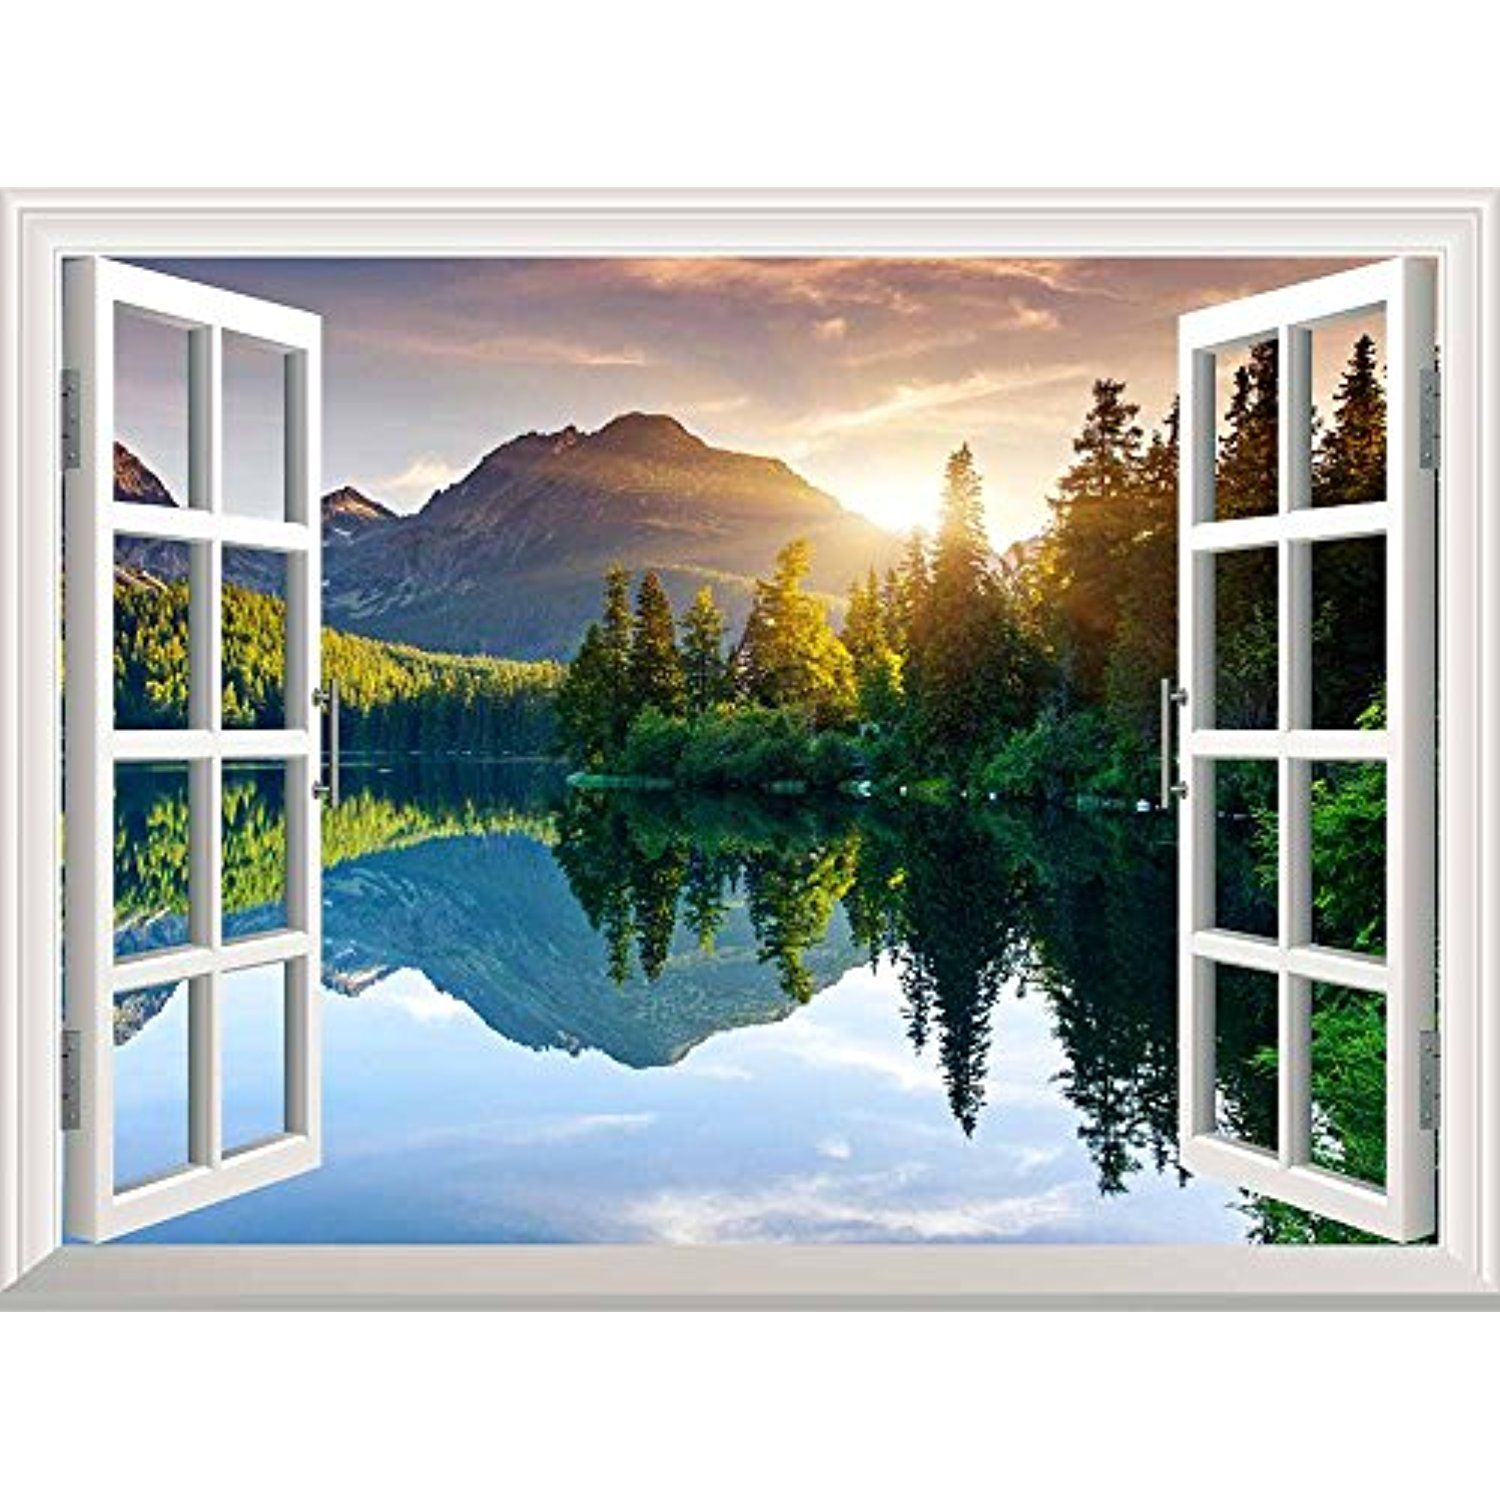 Wall26 Peaceful Landscape With Lake And Mountains Out Of The Open Window Removable Wall Mural Sticker Home Decor Large Wall Murals Wall Murals Photo Mural